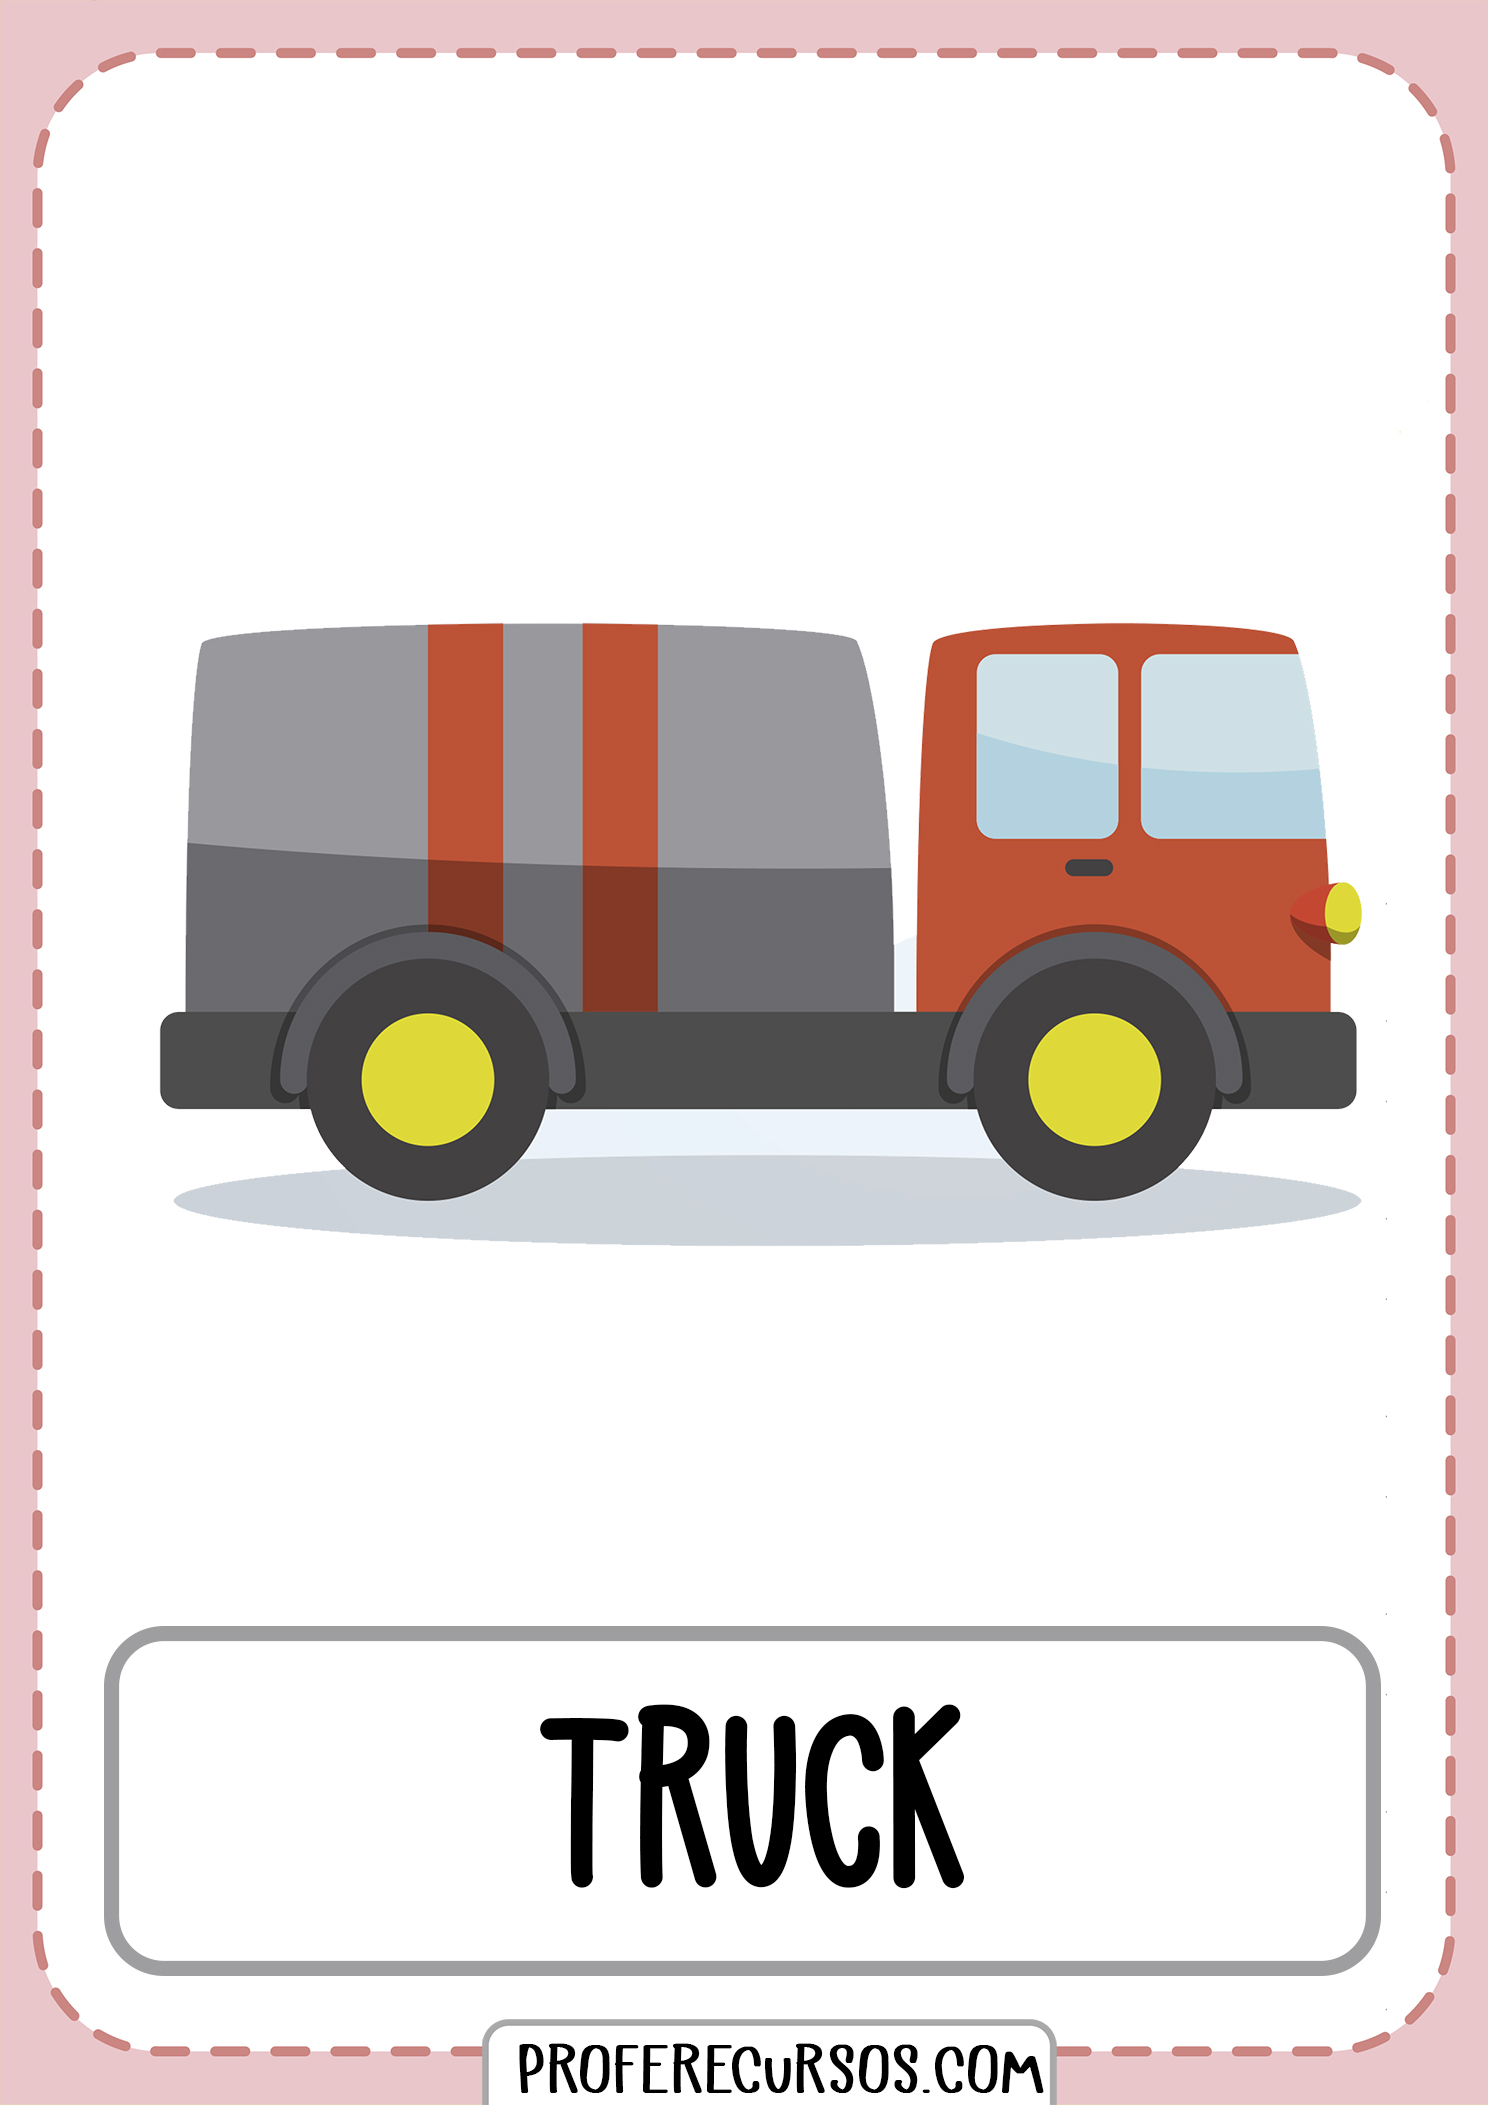 Means-of-transport-vocabulary-truck